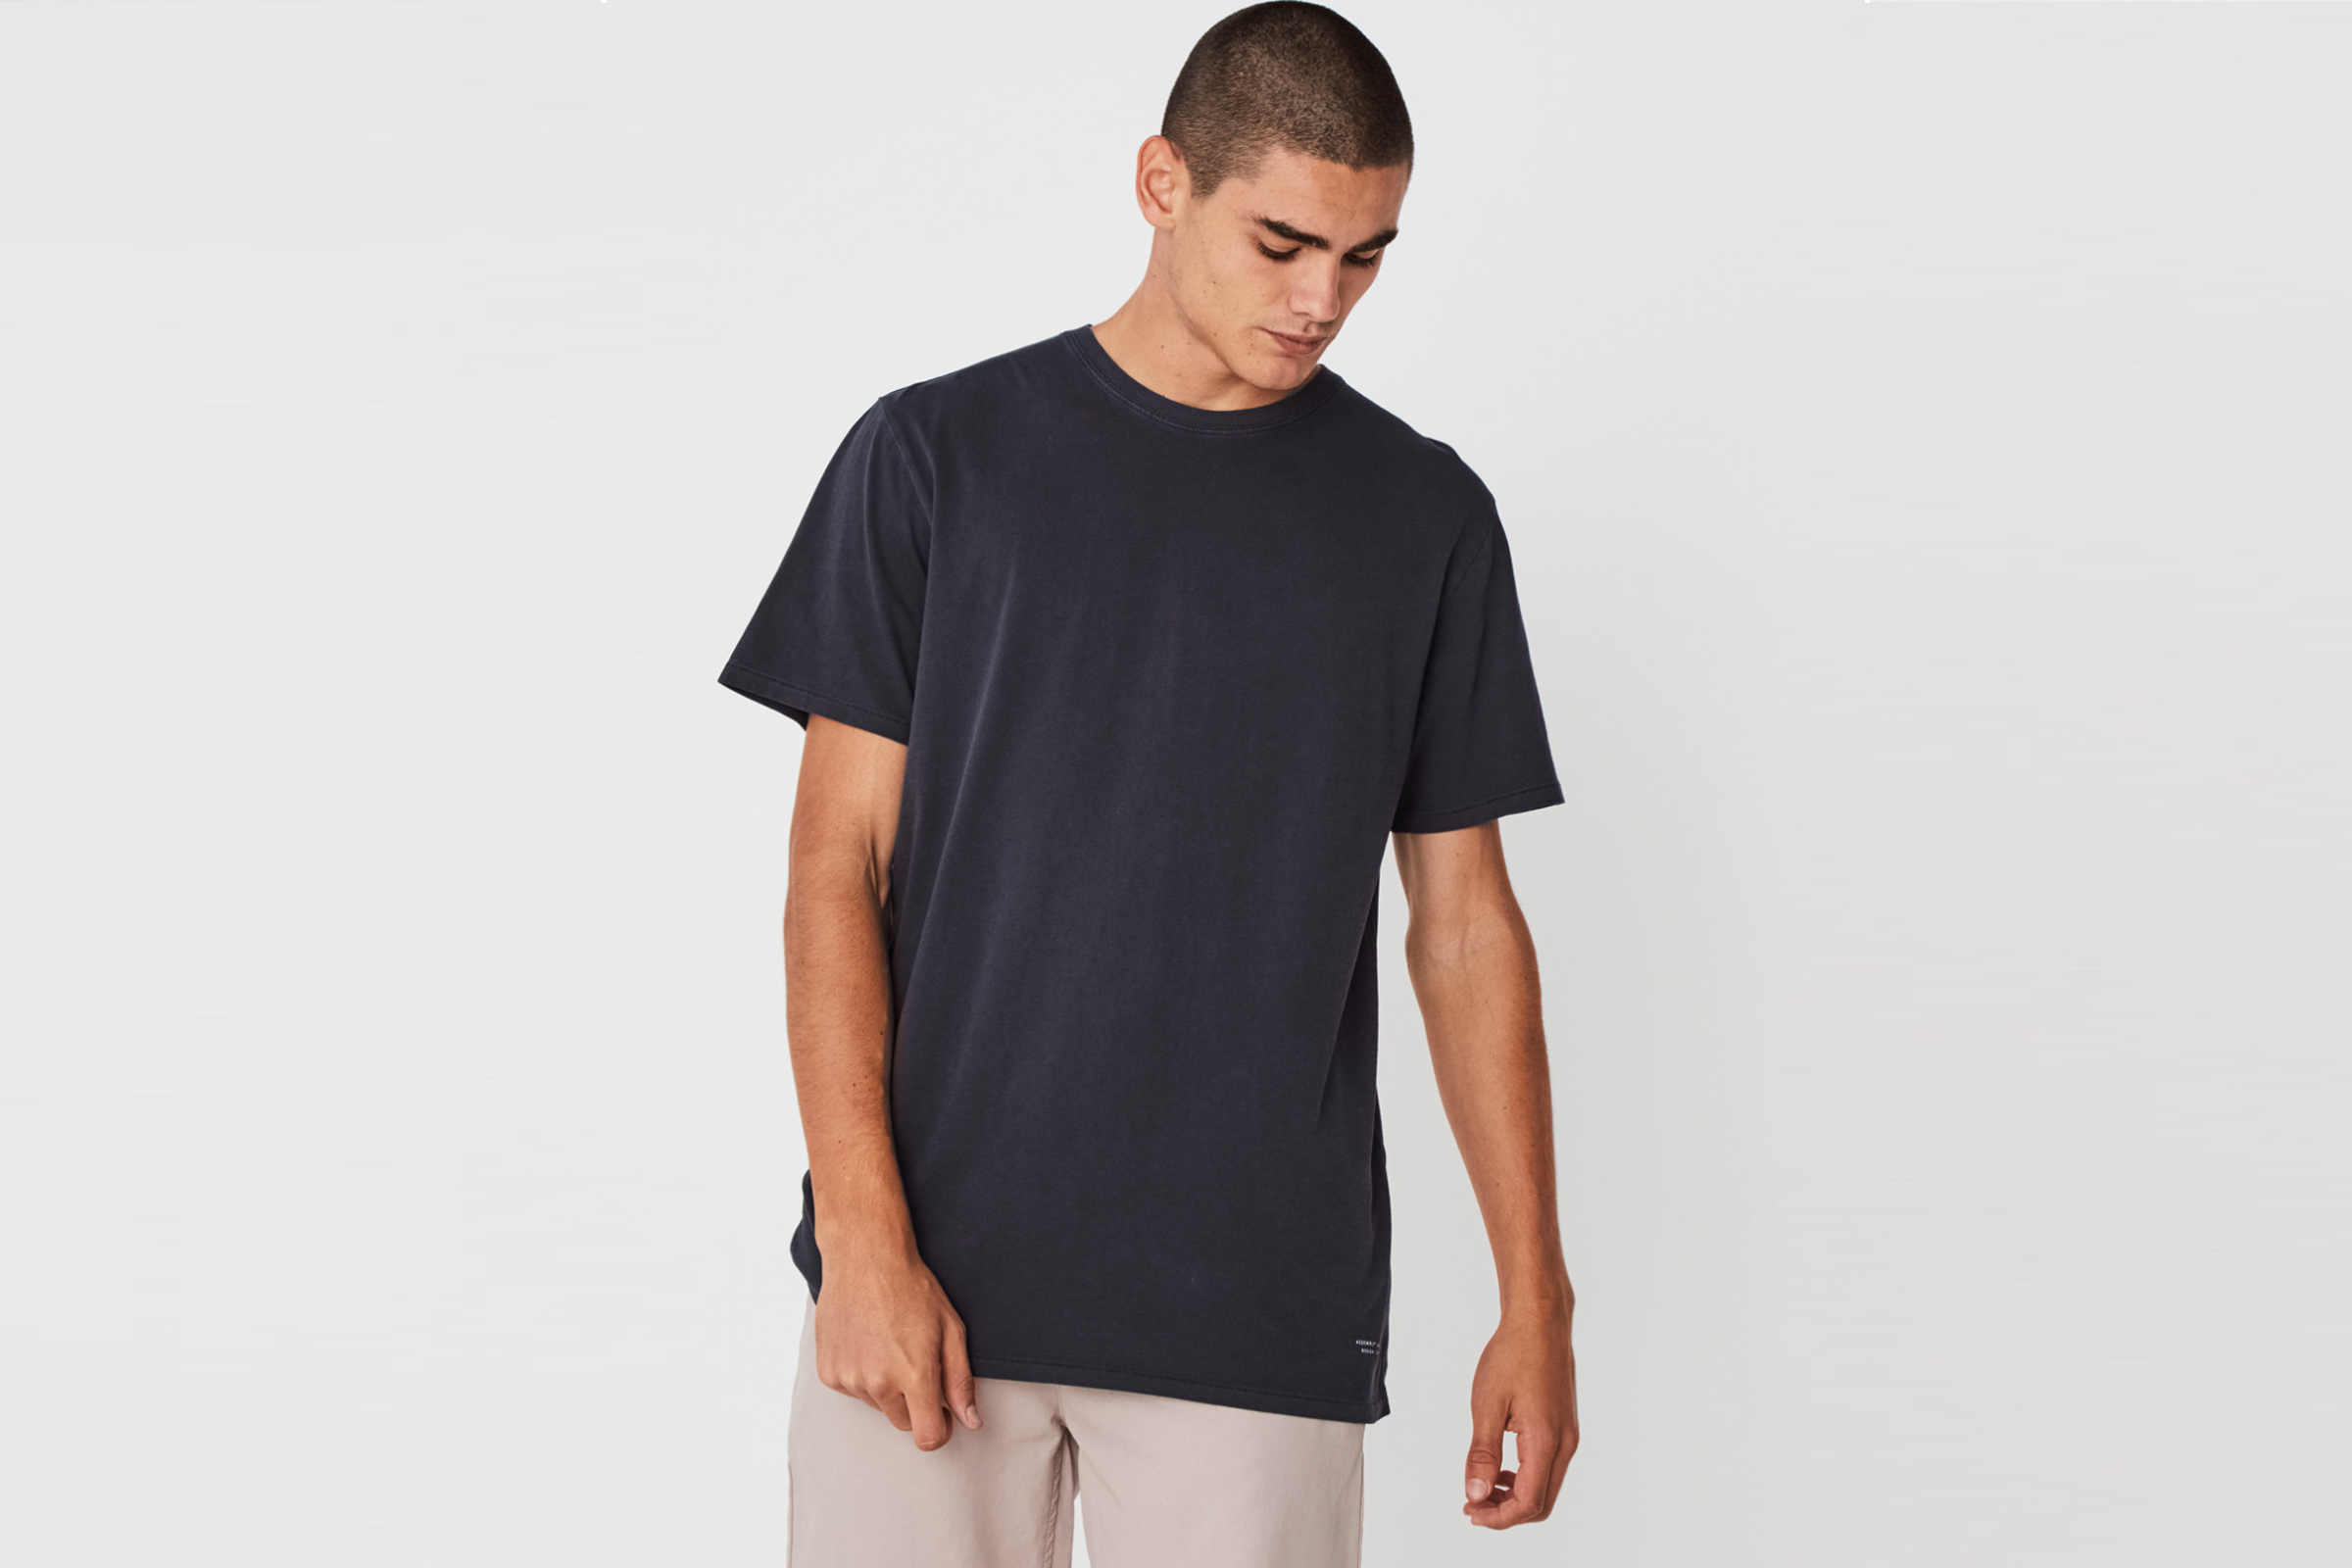 Men's Basic Tees ASSEMBLY